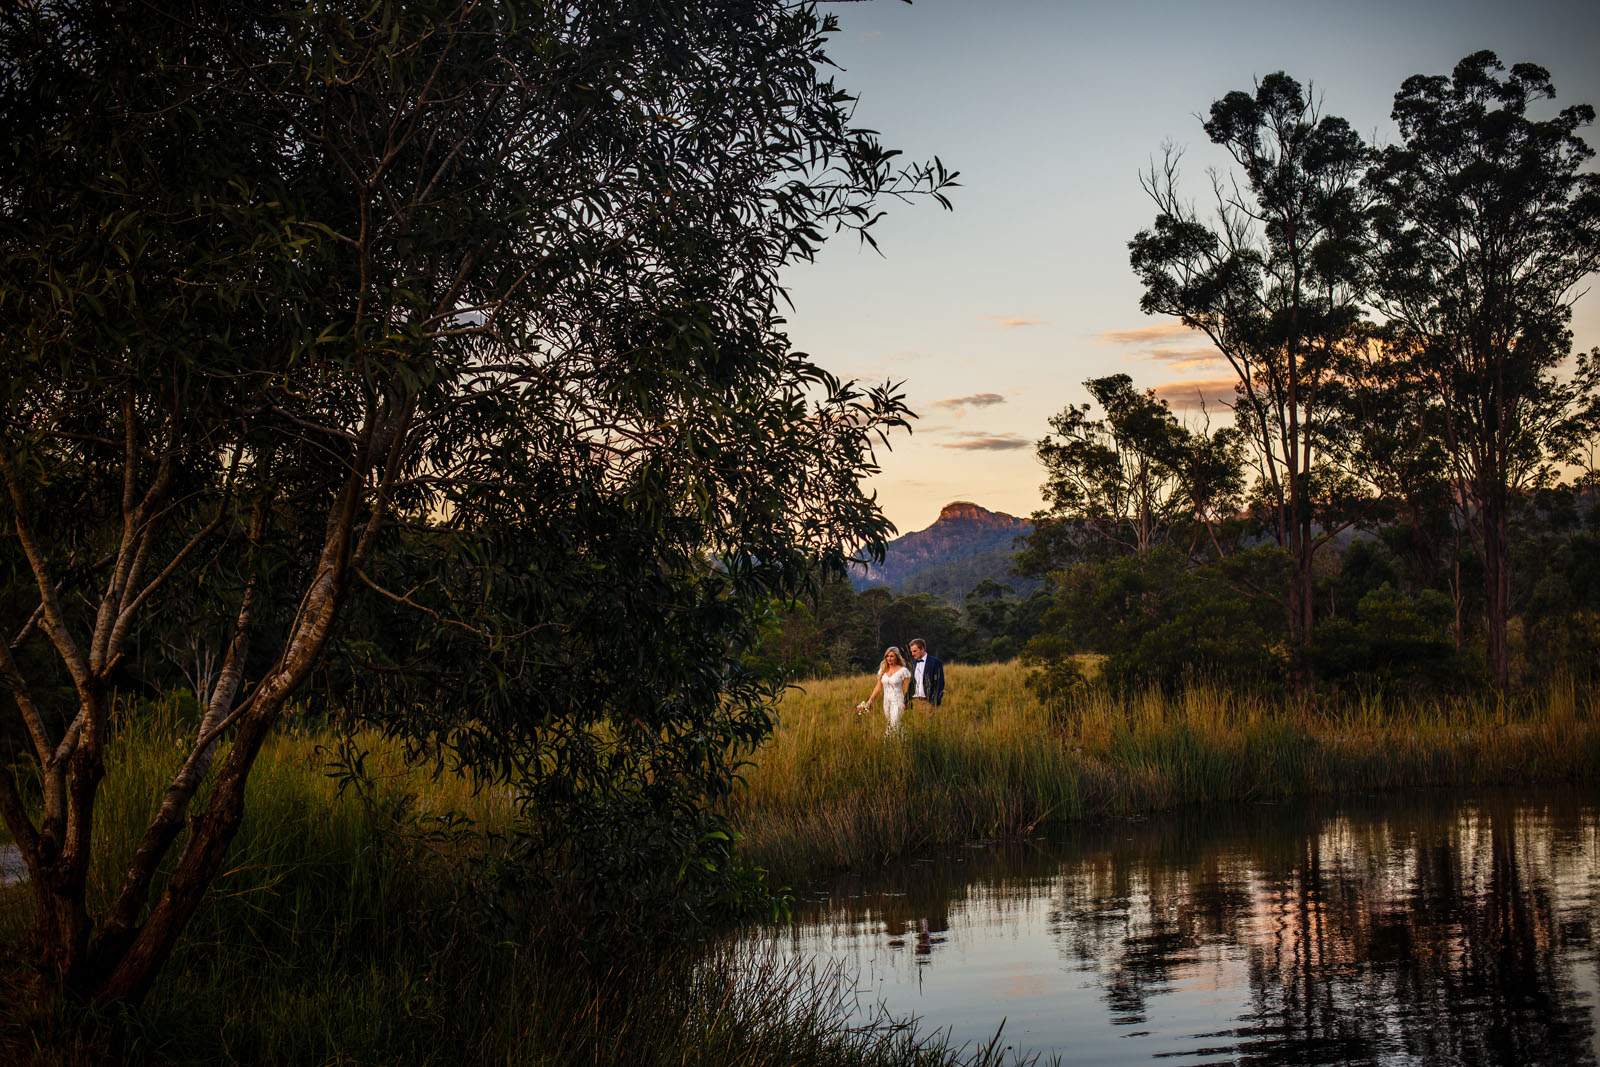 gold_coast_wedding_photographer_111